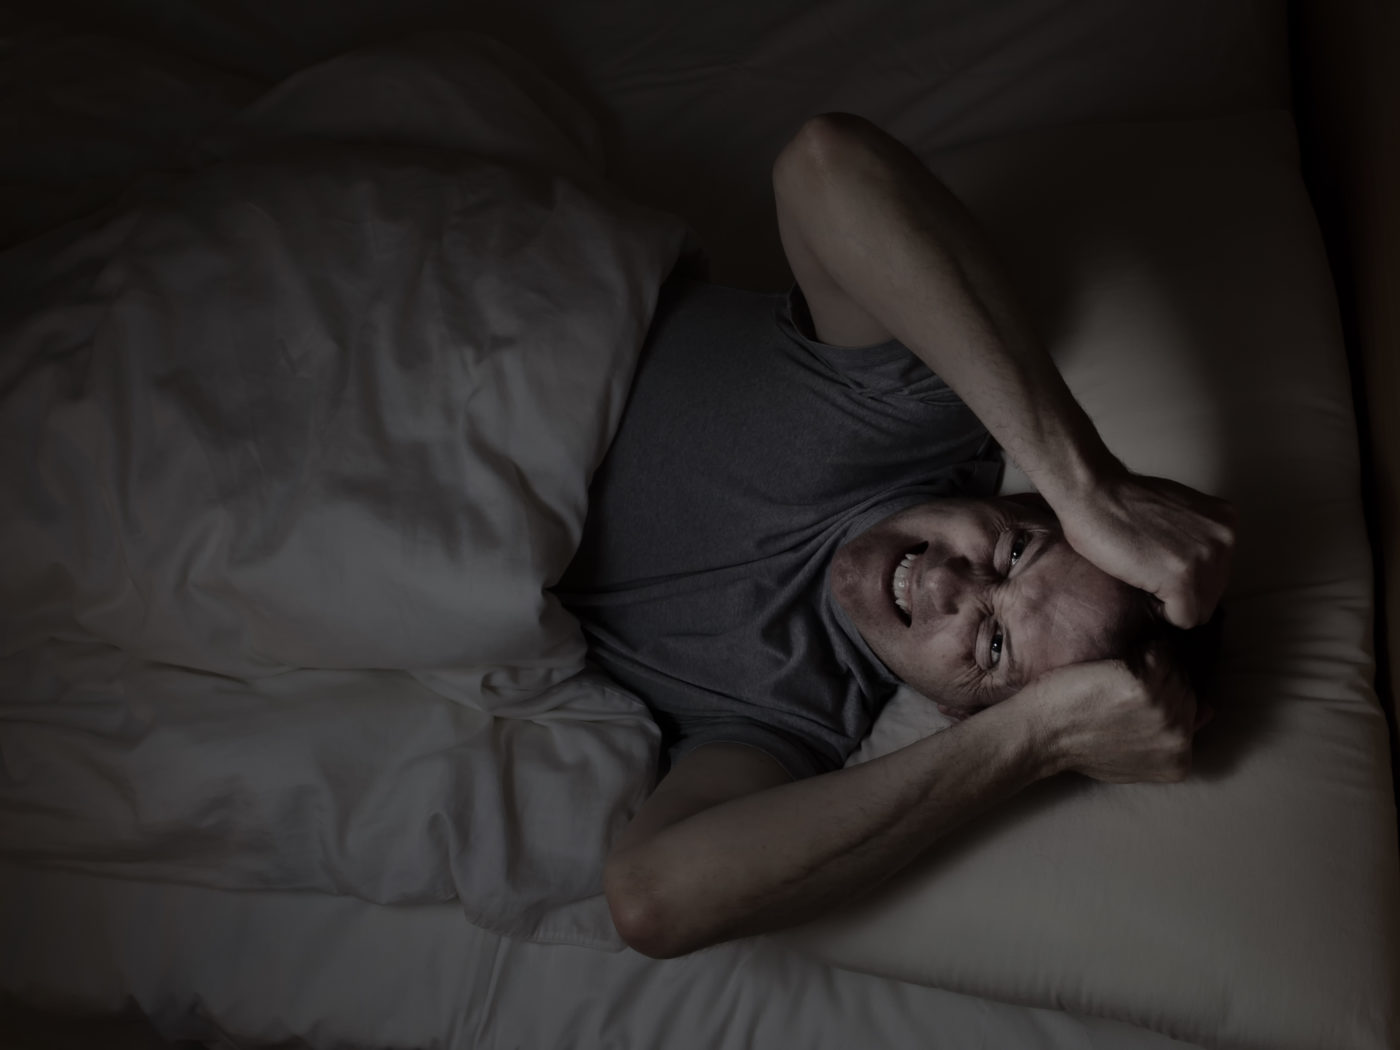 Top view image of mature man showing anger from insomnia